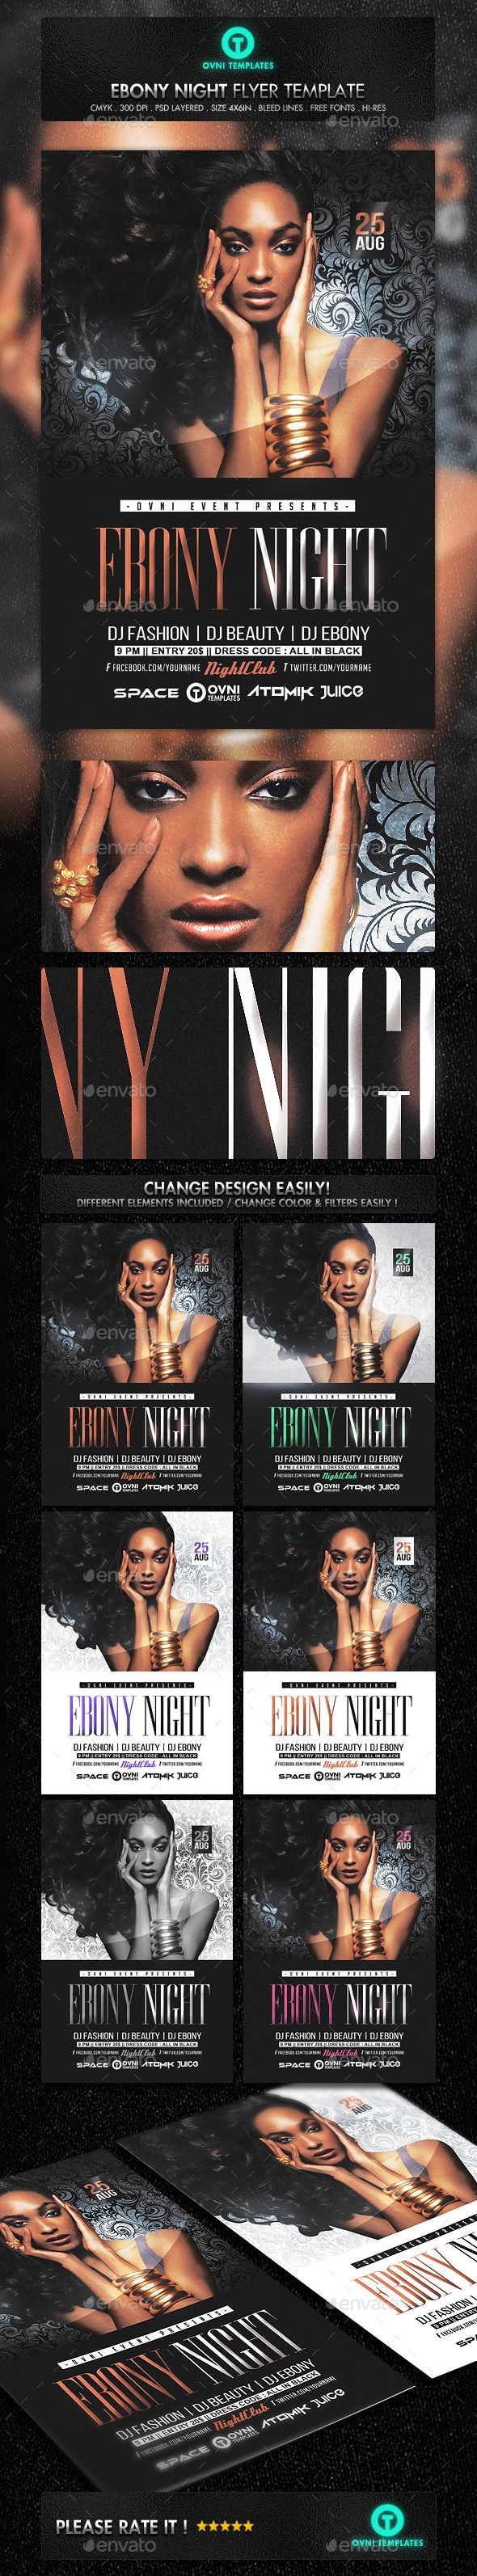 Ebony Black Fashion Model Flyer Template — Photoshop PSD #party #black • Available here → https://graphicriver.net/item/ebony-black-fashion-model-flyer-template/16653670?ref=pxcr